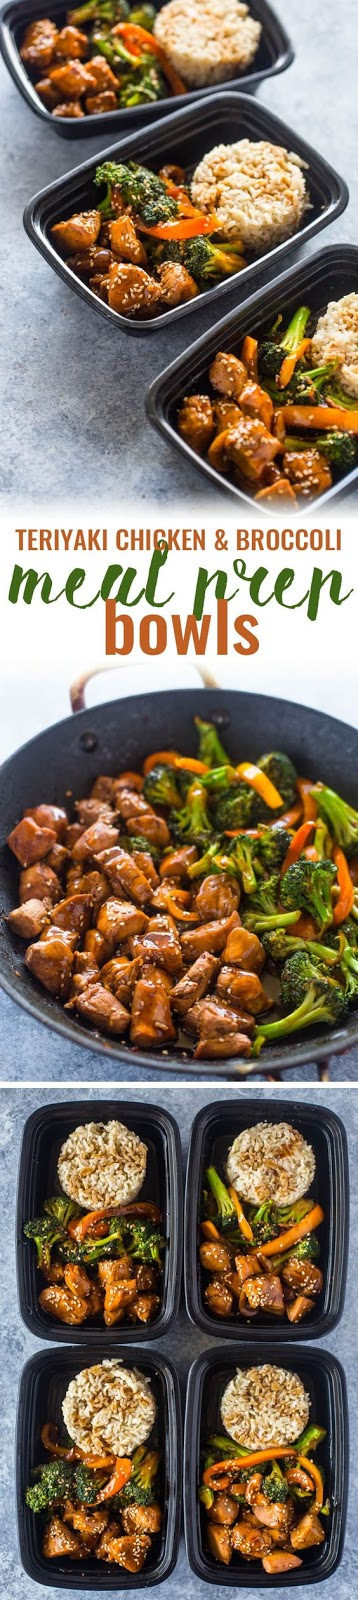 Quick teriyaki chicken and broccoli meal prep bowls make a tasty healthy lunch for the entire work week in under 20 minutes.This meal-prep version of teriyaki chicken is perfect for lunch time. It…